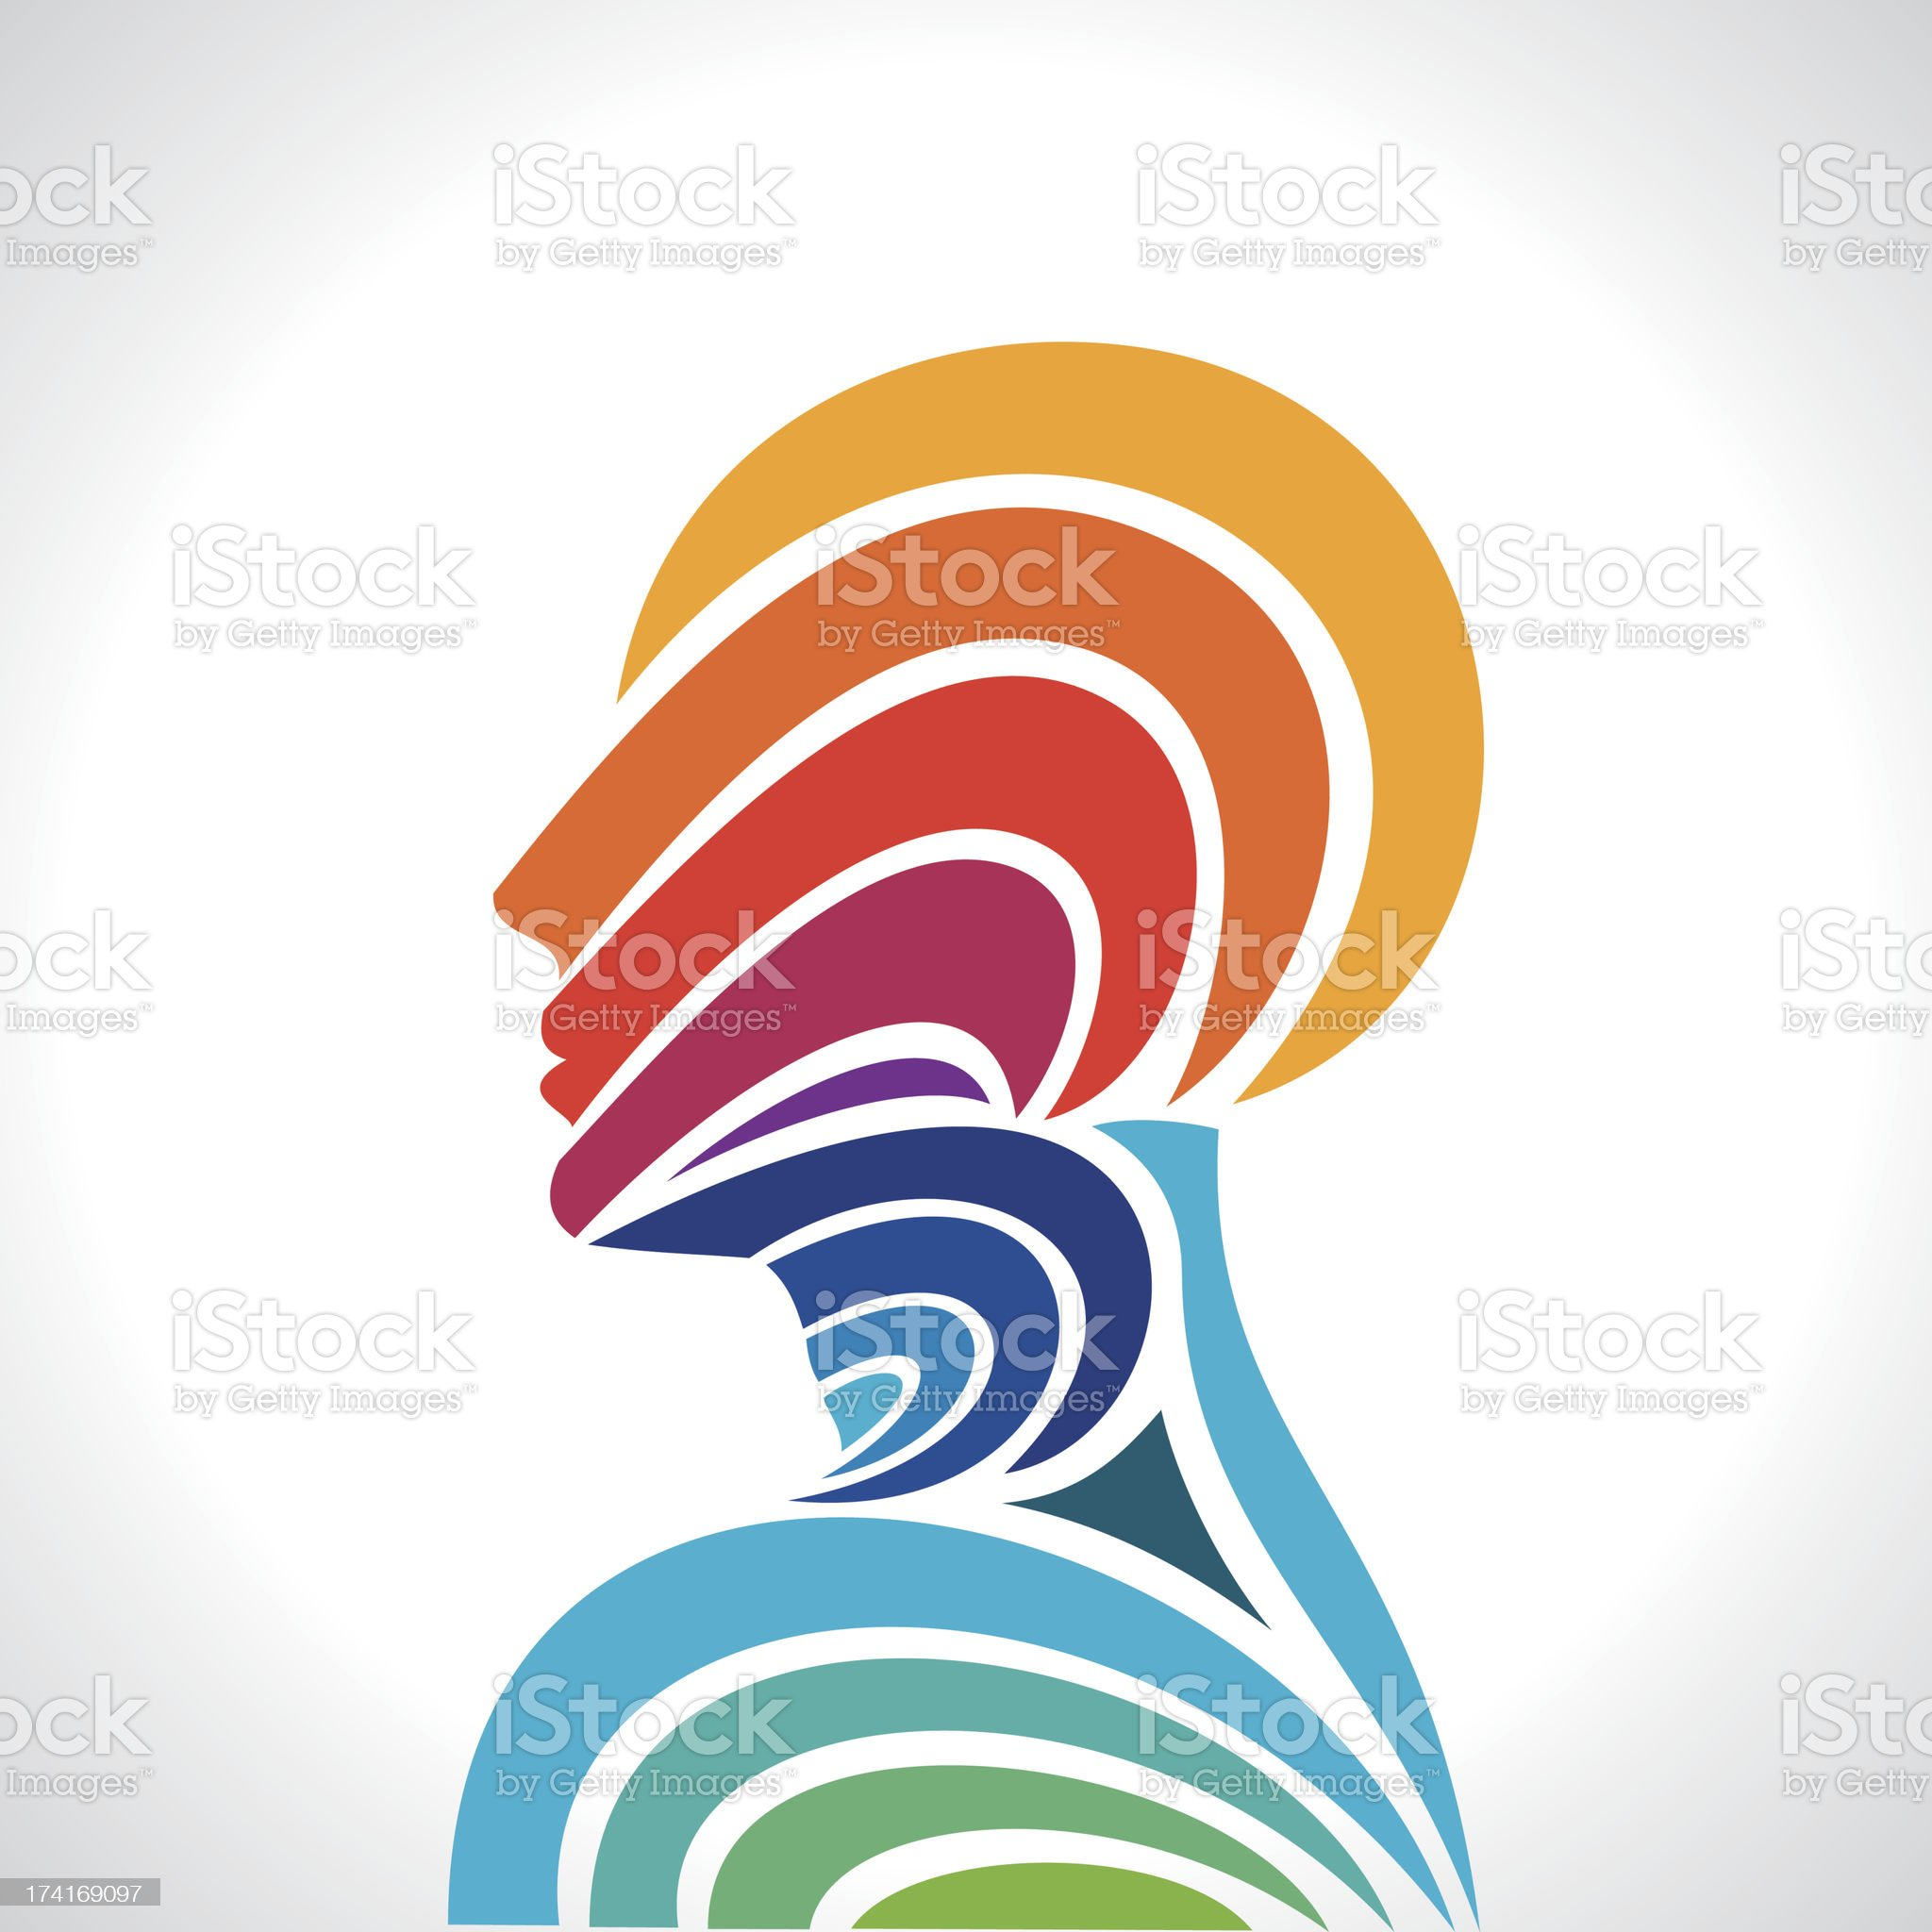 human head thinking  making from multicolor royalty-free stock vector art